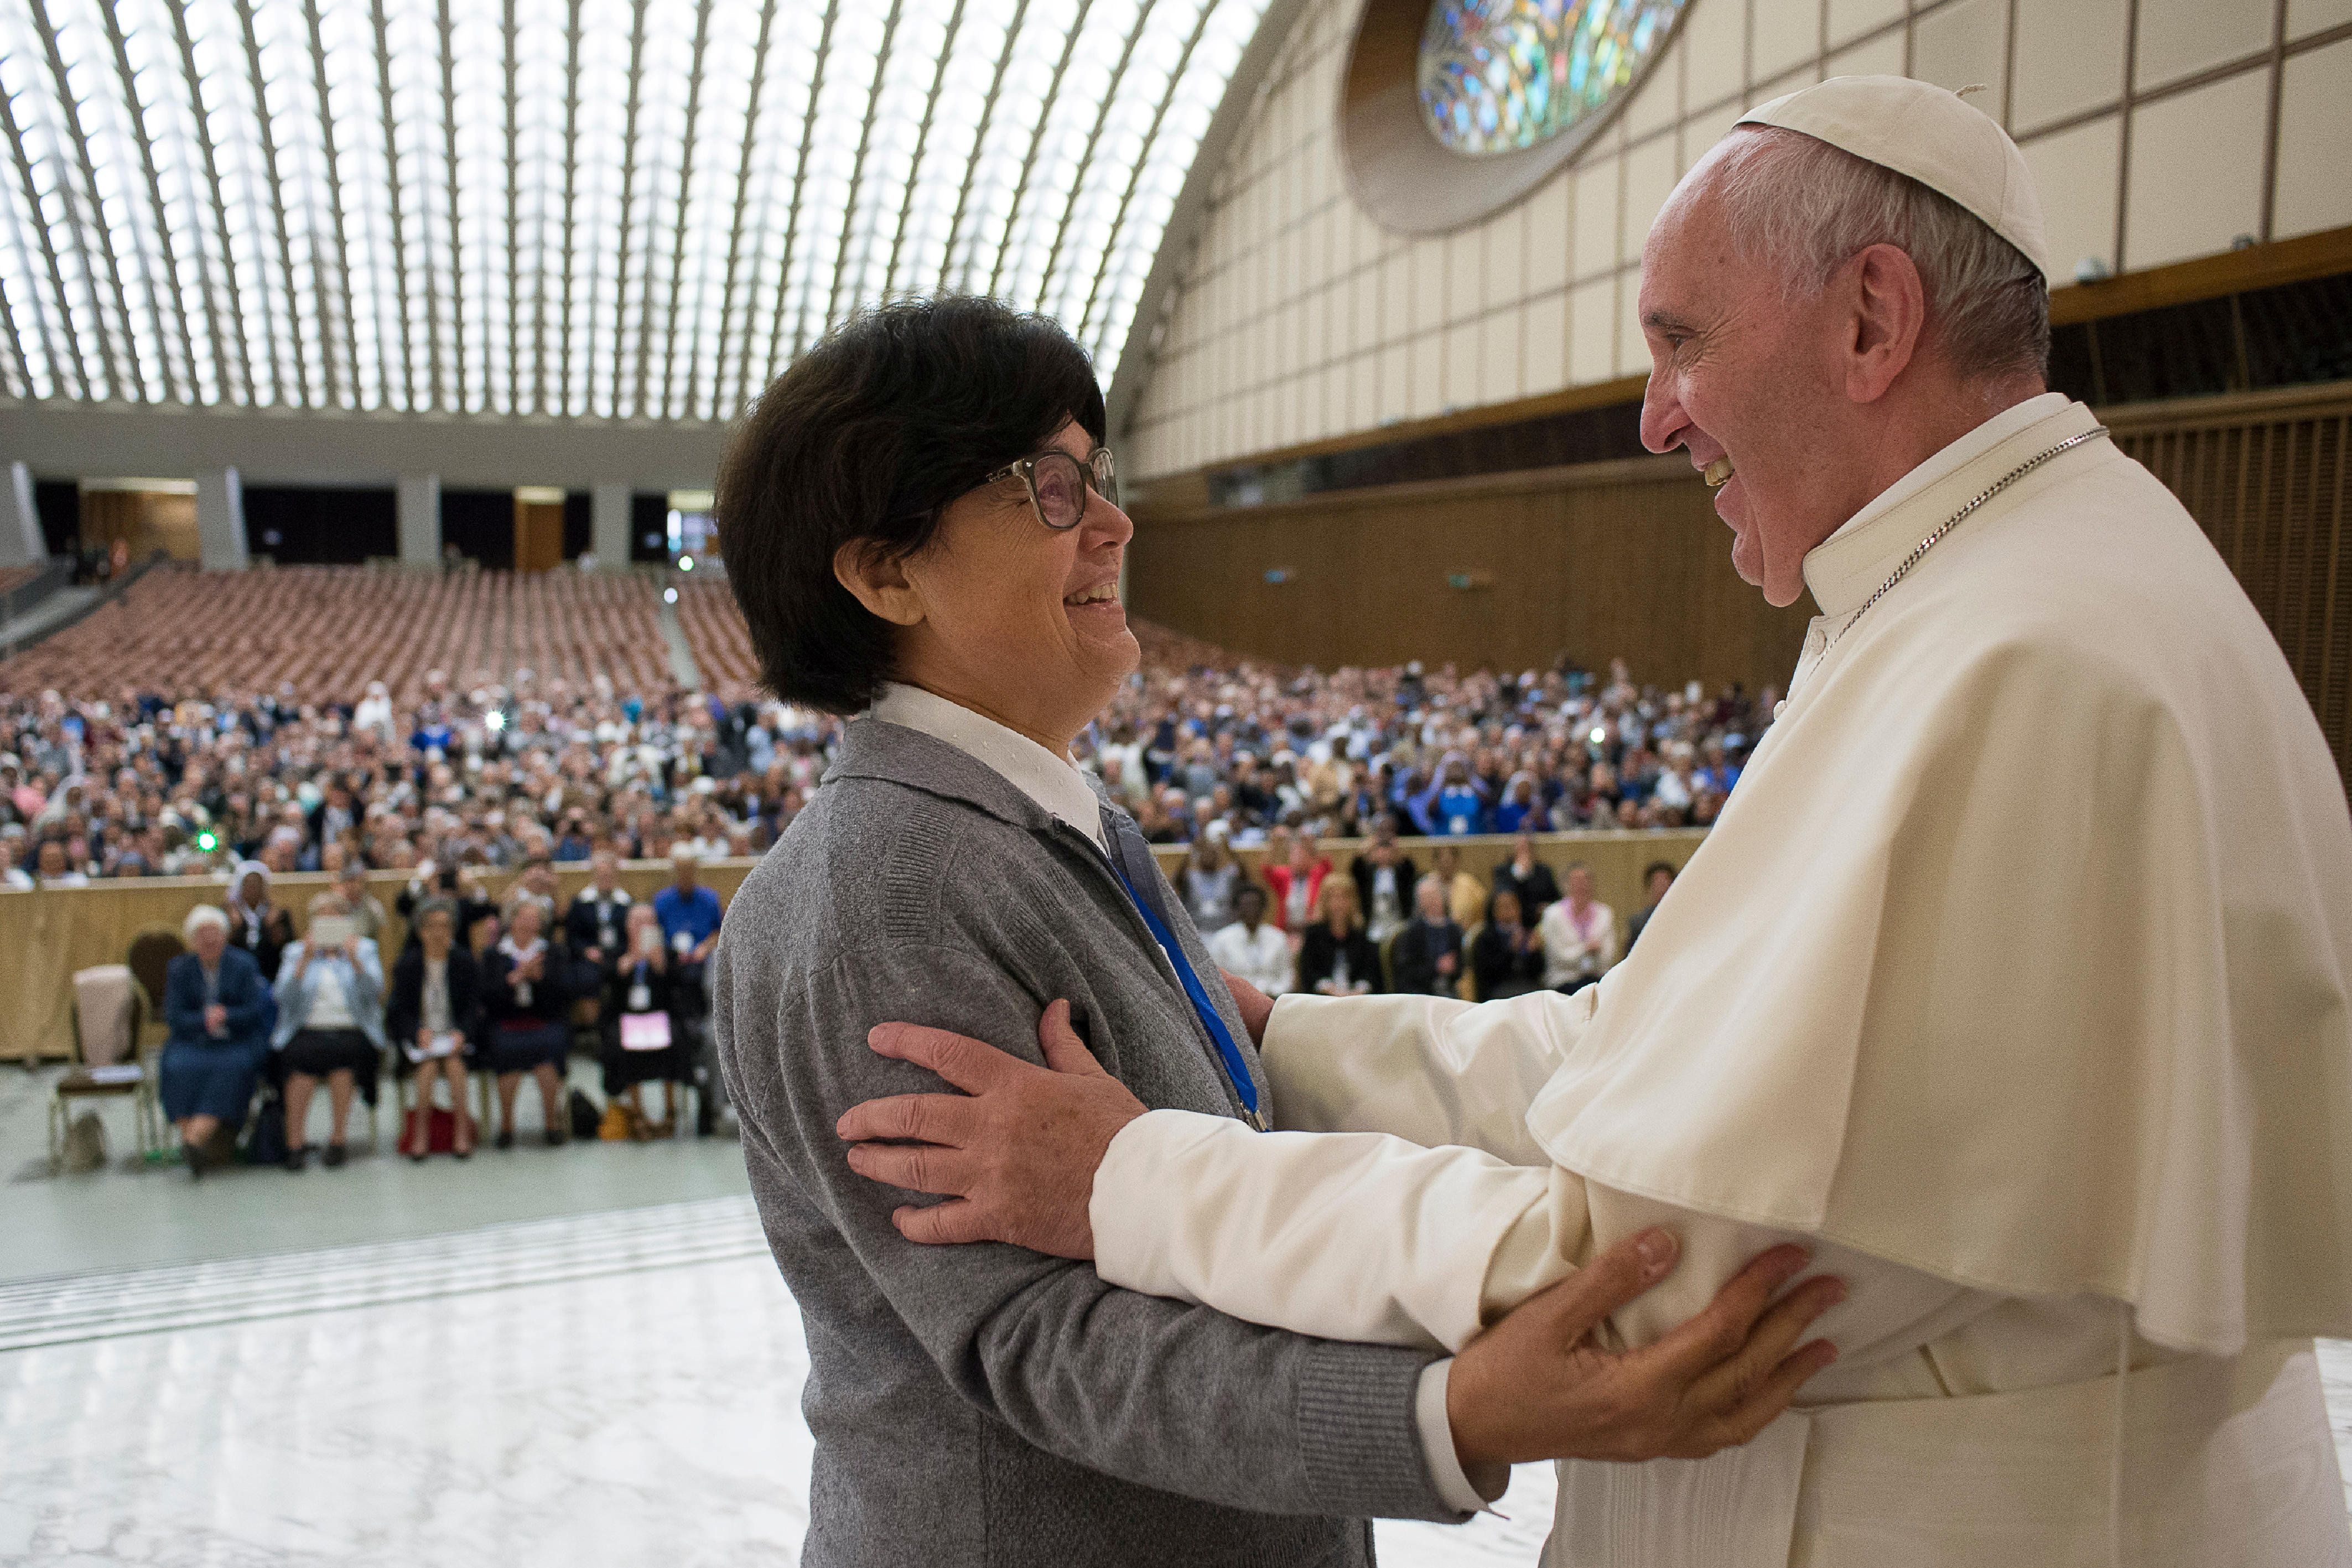 Pope Francis is greeted by Sister Carmen Sammut, a Missionary Sister of Our Lady of Africa, during an audience with UISG (International Union of Superiors General) at the Vatican, May 12, 2016. Osservatore Romano/Handout via Reuters   ATTENTION EDITORS - THIS IMAGE WAS PROVIDED BY A THIRD PARTY. EDITORIAL USE ONLY. NO RESALES. NO ARCHIVE.